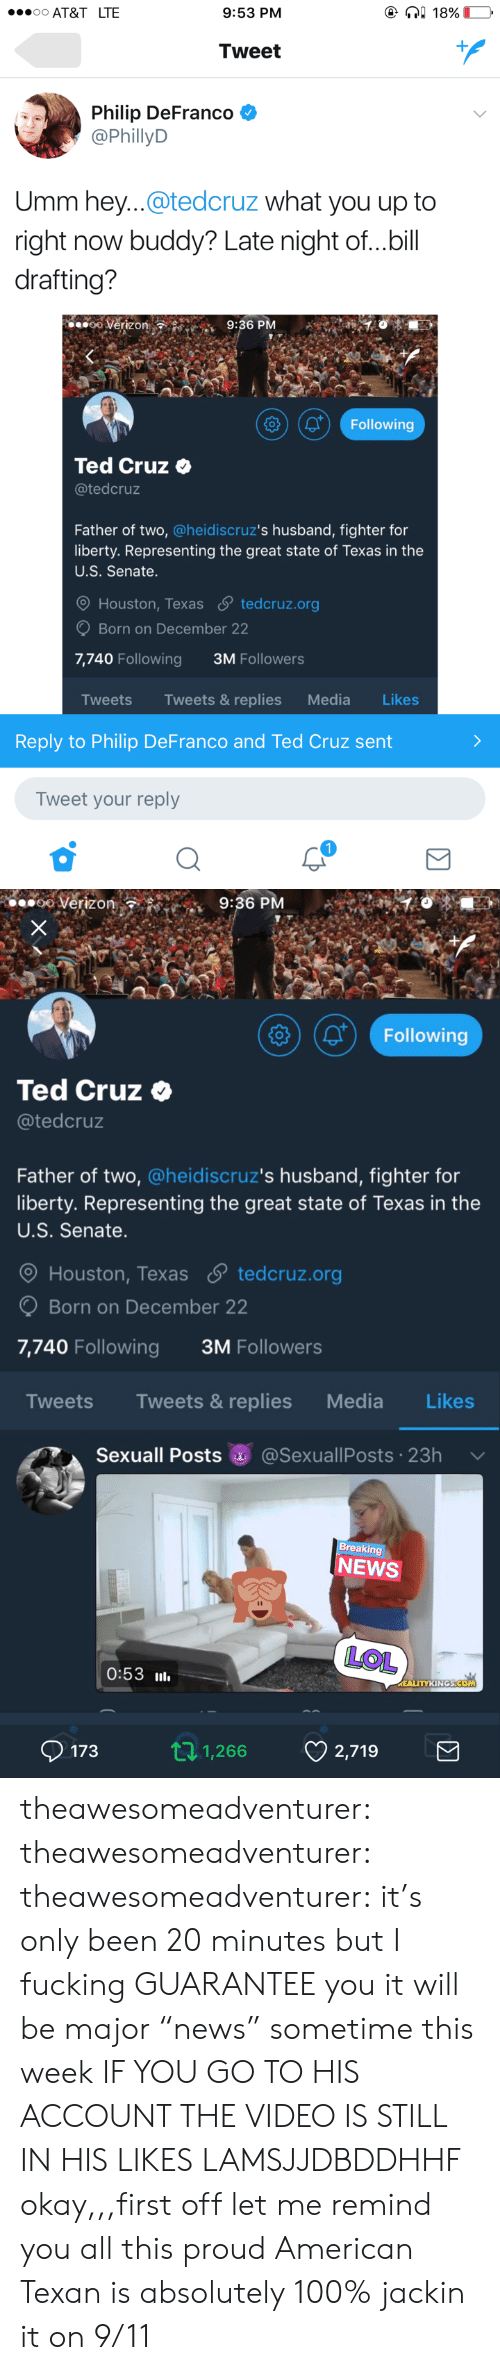 """houston texas: AT&T LTE  9:53 PM  Tweet  Philip DeFranco *  @PhillyD  Umm hey...@tedcruz what you up to  right now buddy? Late night of...bill  drafting?  ooVerizon  9:36 PM  (01 Following  Ted Cruz o  @tedcruz  Father of two, @heidiscruz's husband, fighter for  liberty. Representing the great state of Texas in the  U.S. Senate  Houston, Texas S tedcruz.org  Born on December 22  7,740 Following  3M Followers  Tweets Tweets & replies Media Likes  Reply to Philip DeFranco and Ted Cruz sent  Tweet your reply   o Verizon  9:36 P  Following  Ted Cruz  @tedcruz  Father of two, @heidiscruz's husband, fighter for  liberty. Representing the great state of Texas in the  U.S. Senate.  O Houston, Texas  tedcruz.org  Born on December 22  7,740 Following  3M Followers  Tweets Tweets& replies Media Likes  Sexuall Posts @SexuallPosts 23h  reaking  NEWS  LOL  0:53 l  1731,266 2,719 theawesomeadventurer: theawesomeadventurer:   theawesomeadventurer:  it's only been 20 minutes but I fucking GUARANTEE you it will be major """"news"""" sometime this week  IF YOU GO TO HIS ACCOUNT THE VIDEO IS STILL IN HIS LIKES LAMSJJDBDDHHF   okay,,,first off let me remind you all this proud American Texan is absolutely 100% jackin it on 9/11"""